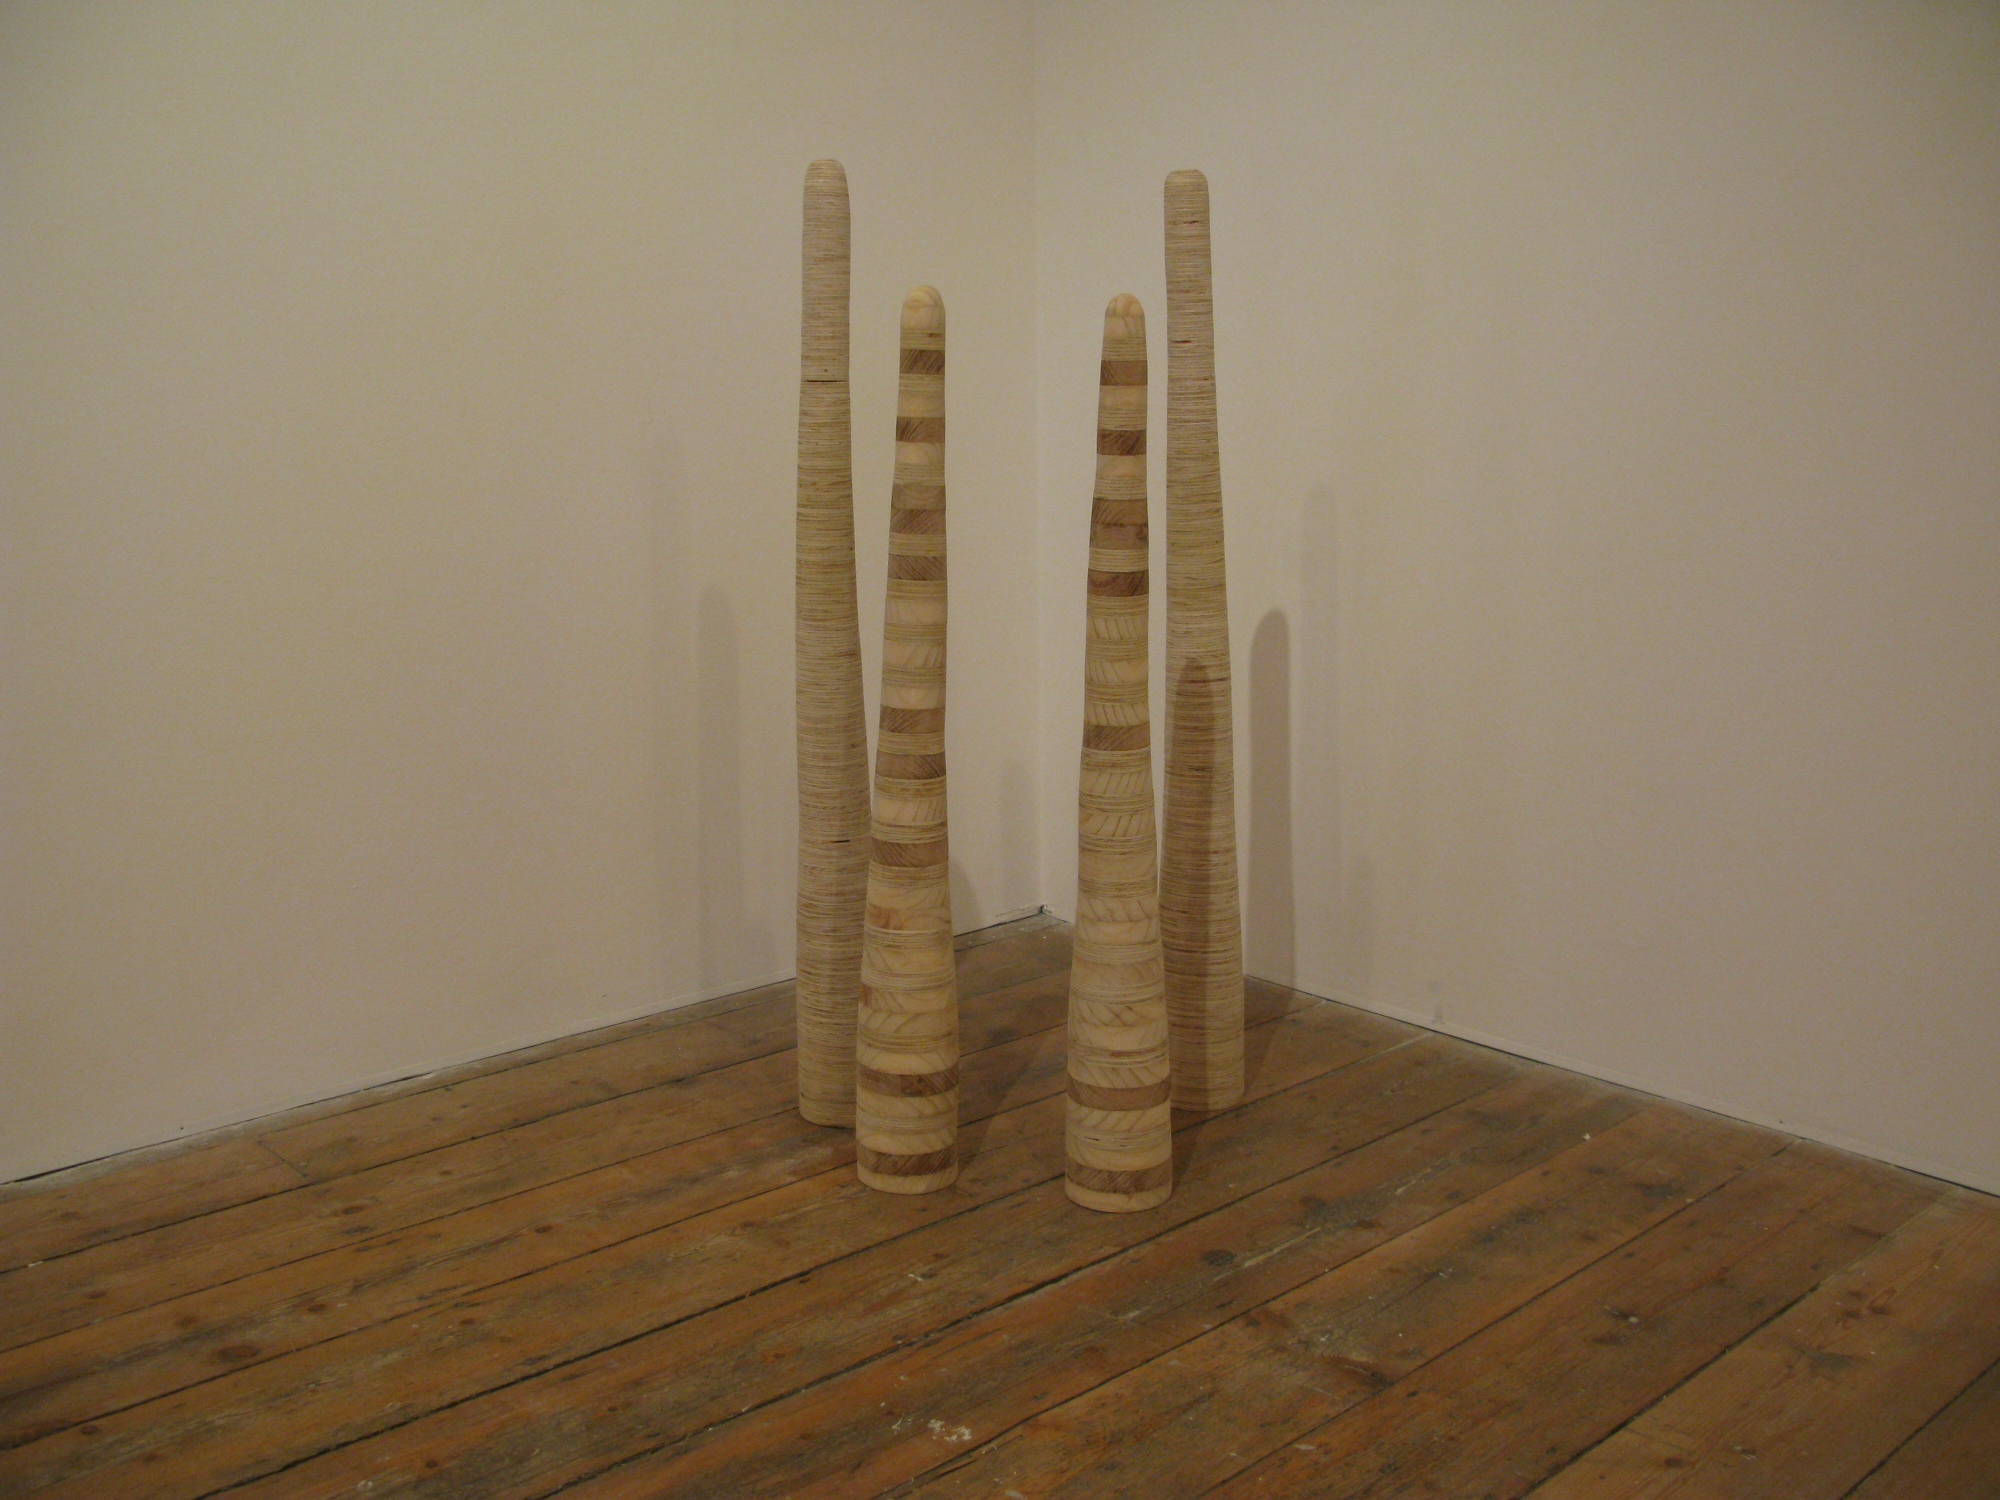 Kent Wilson,  Seasonally Adjusted,  2012, plywood, pine and red gum, dimensions variable